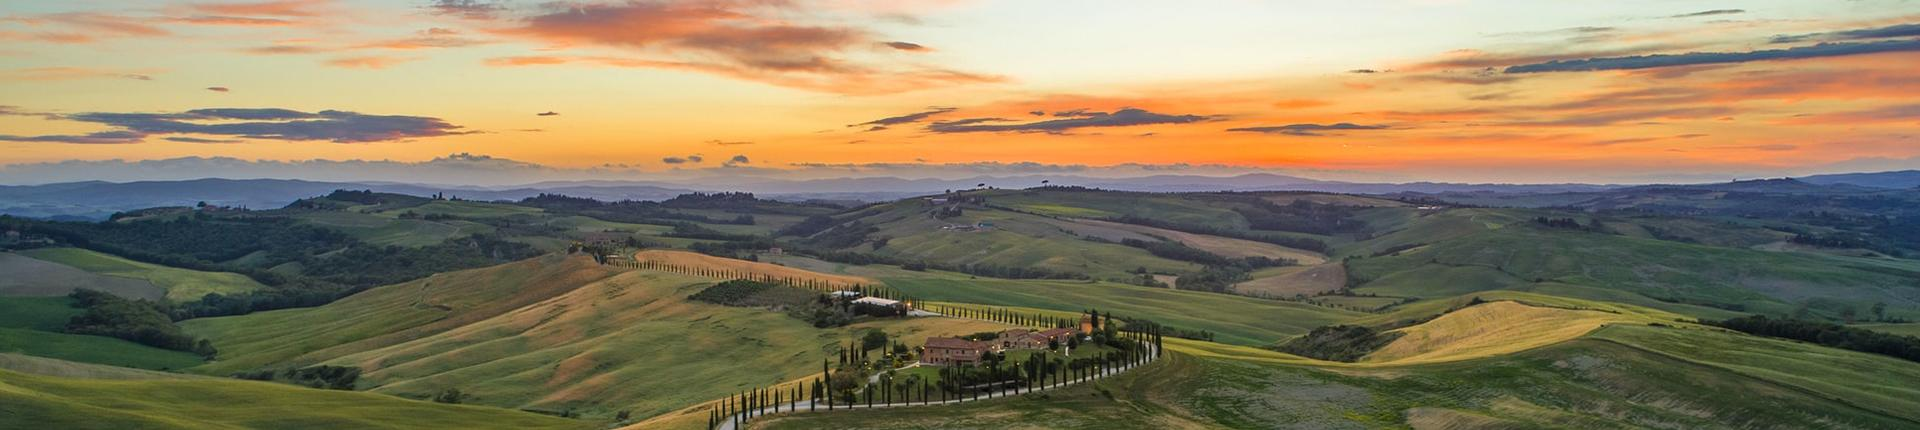 Best of Tuscany, hills